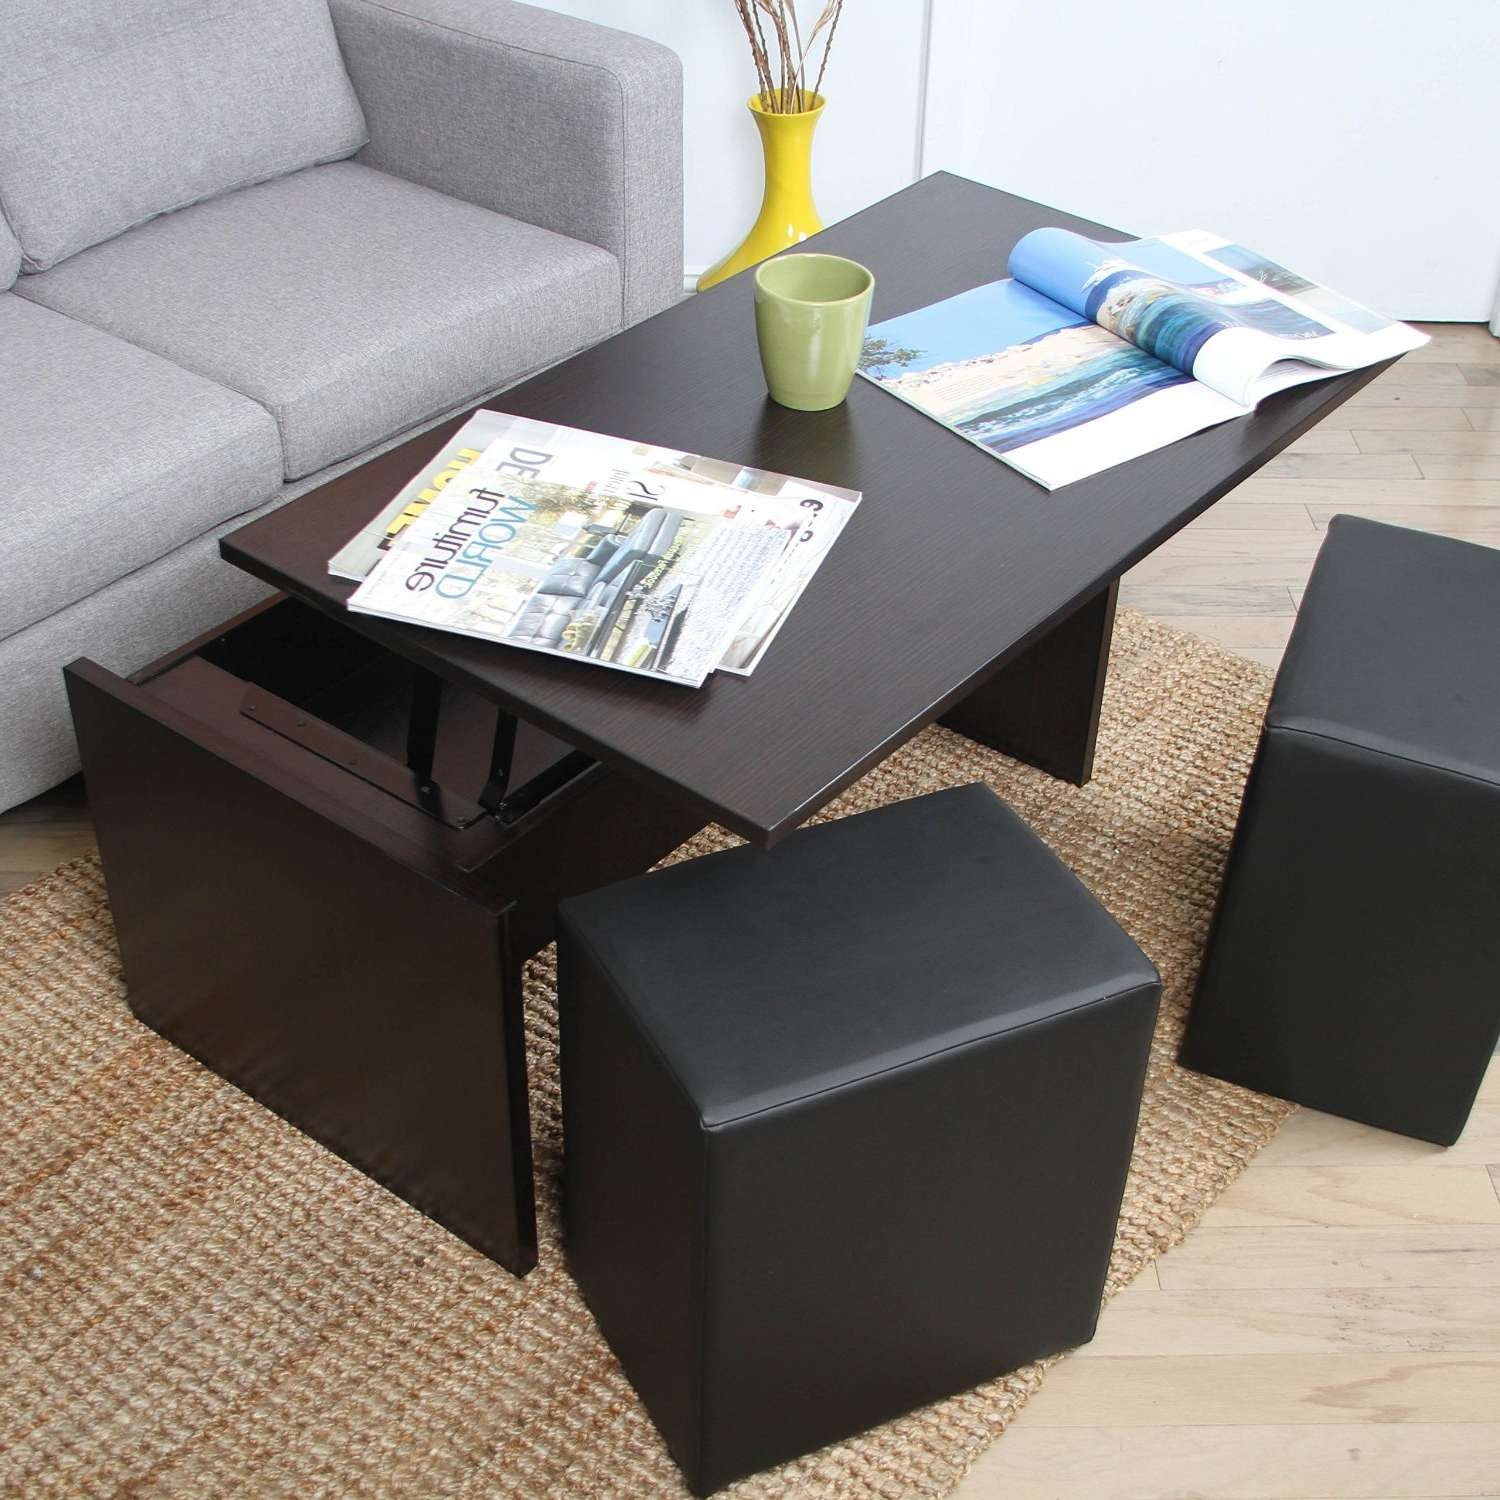 Total Fab: Form & Function: Cocktail And Coffee Tables With Within Most Recently Released Coffee Tables With Seating And Storage (View 6 of 20)